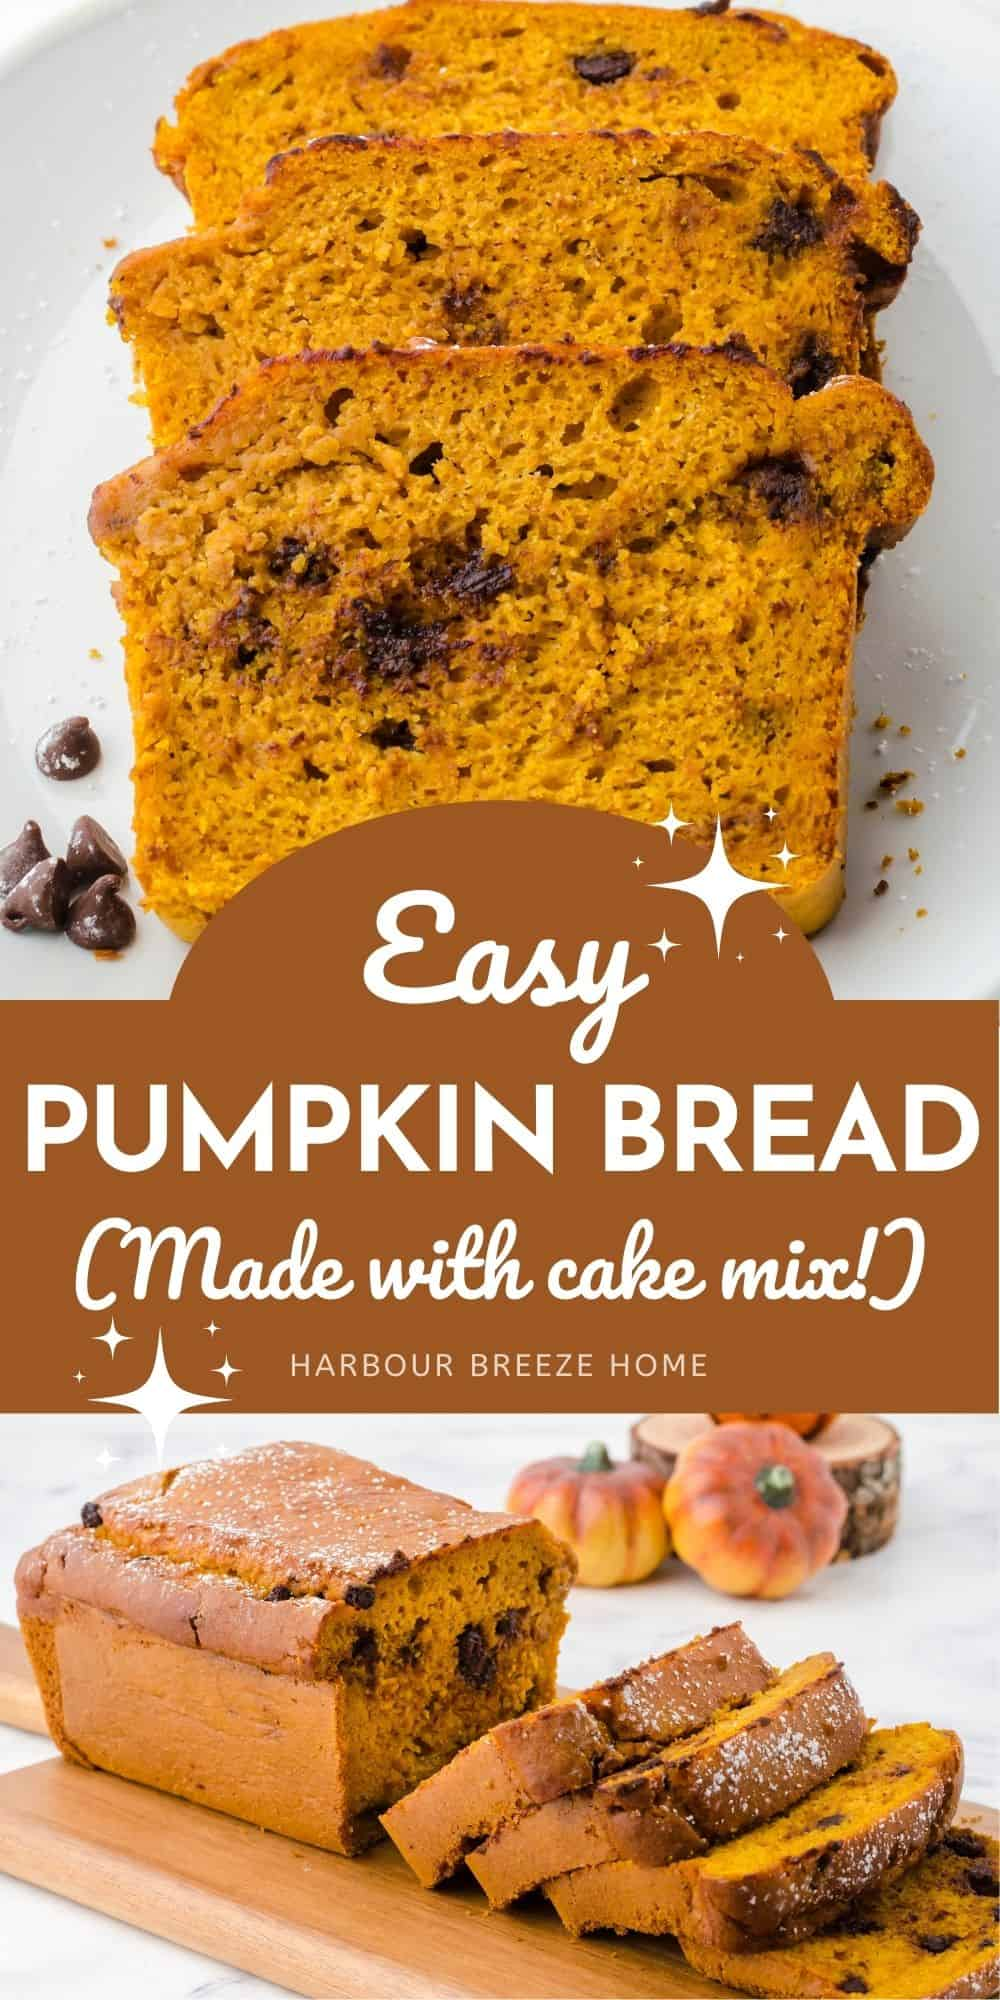 Pumpkin Bread made with yellow cake mix and canned pumpkin